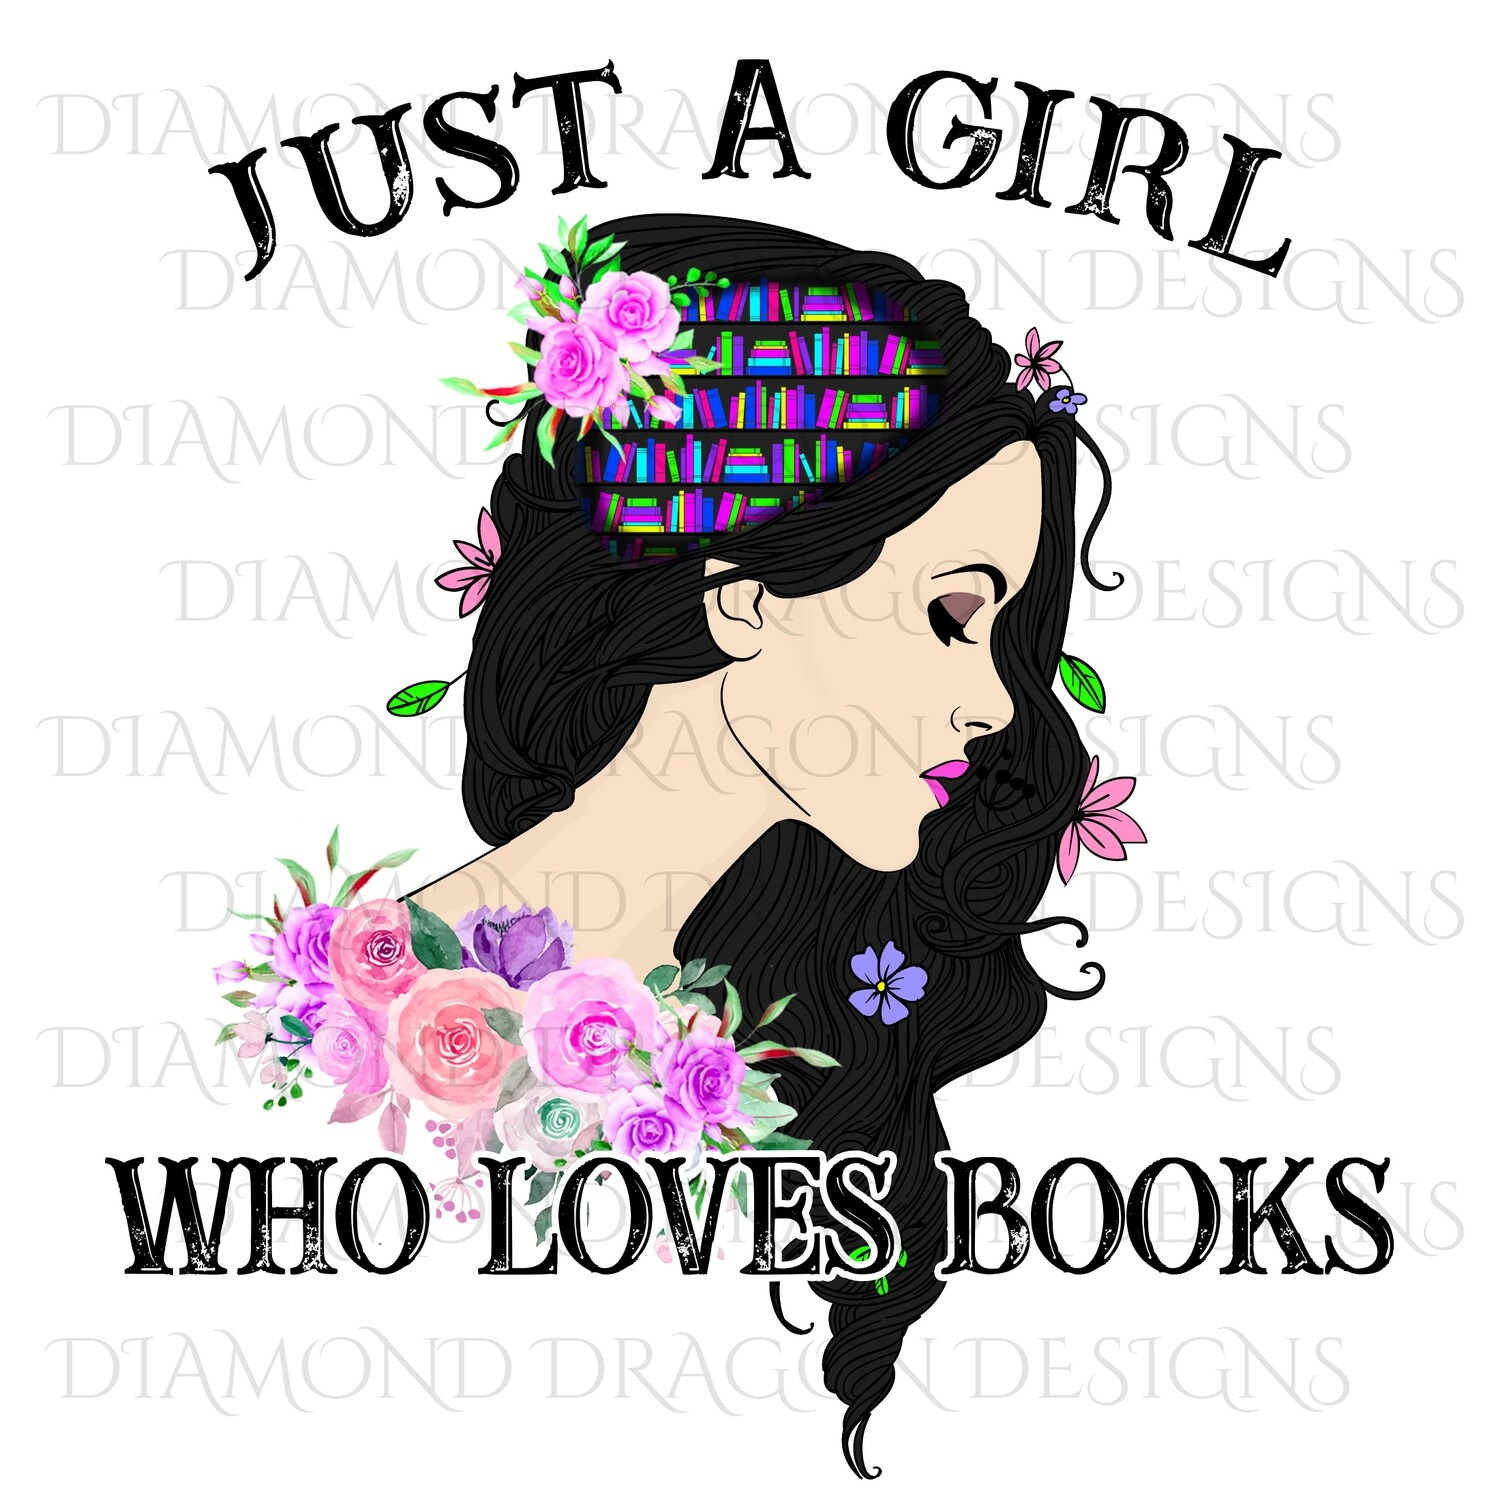 Books - Whimsical, Black Haired, Pink Lip, Just a Girl Who Loves Books, Lady Library, Book Girl, Book Lover, Pink Floral, Digital Image